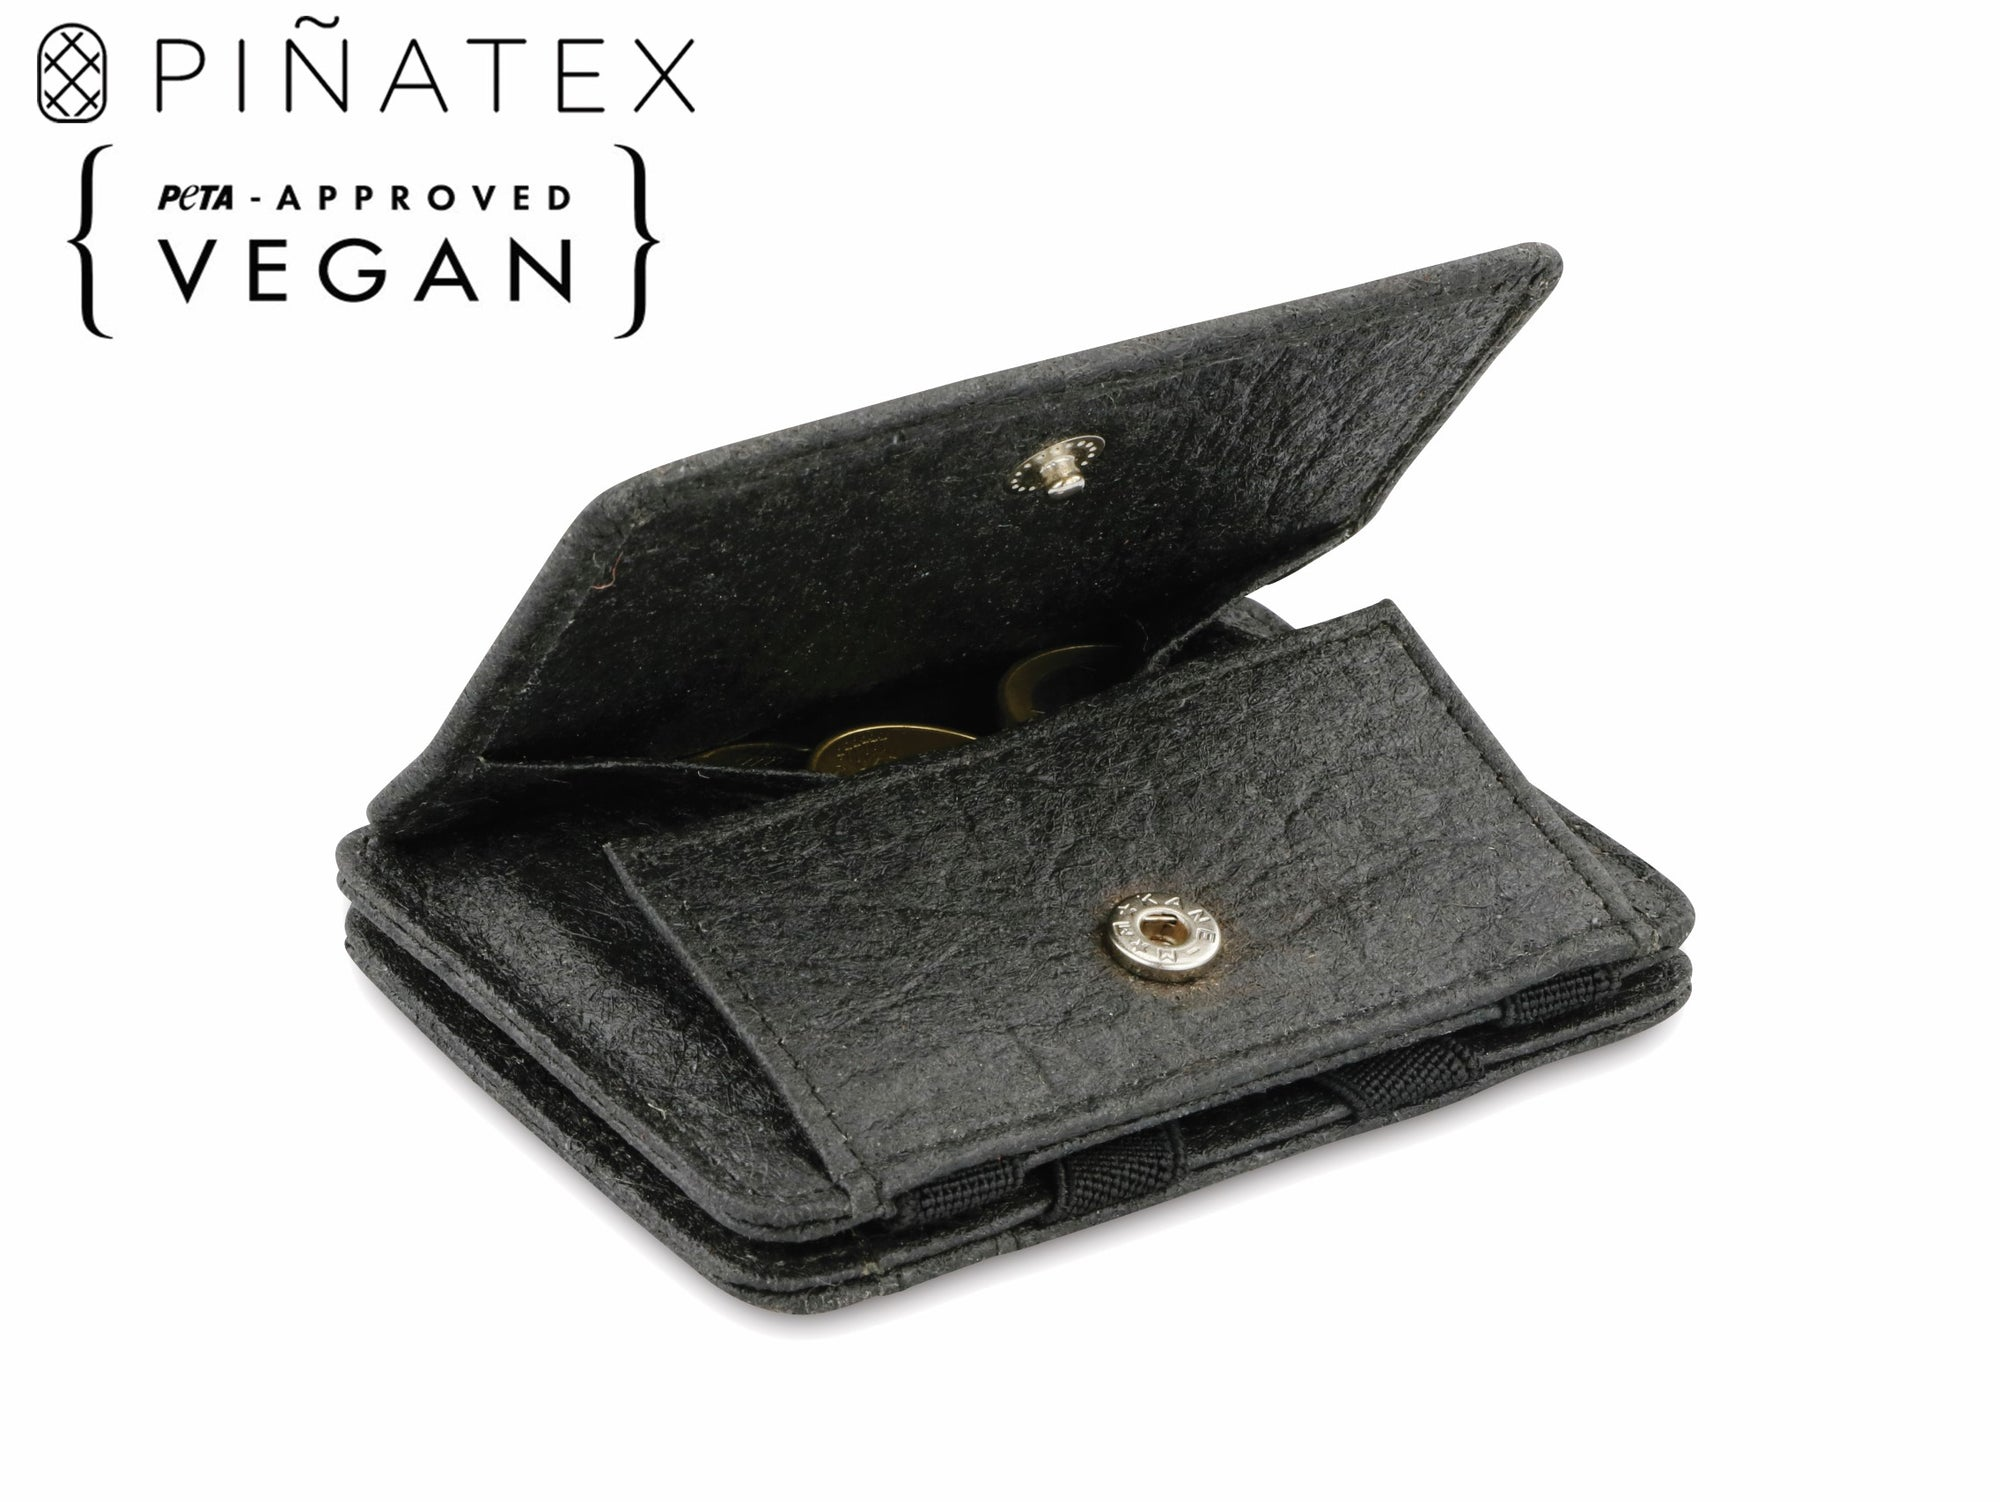 Hunterson Vegan RFID Magic Coin Wallet - Charcoal - 1